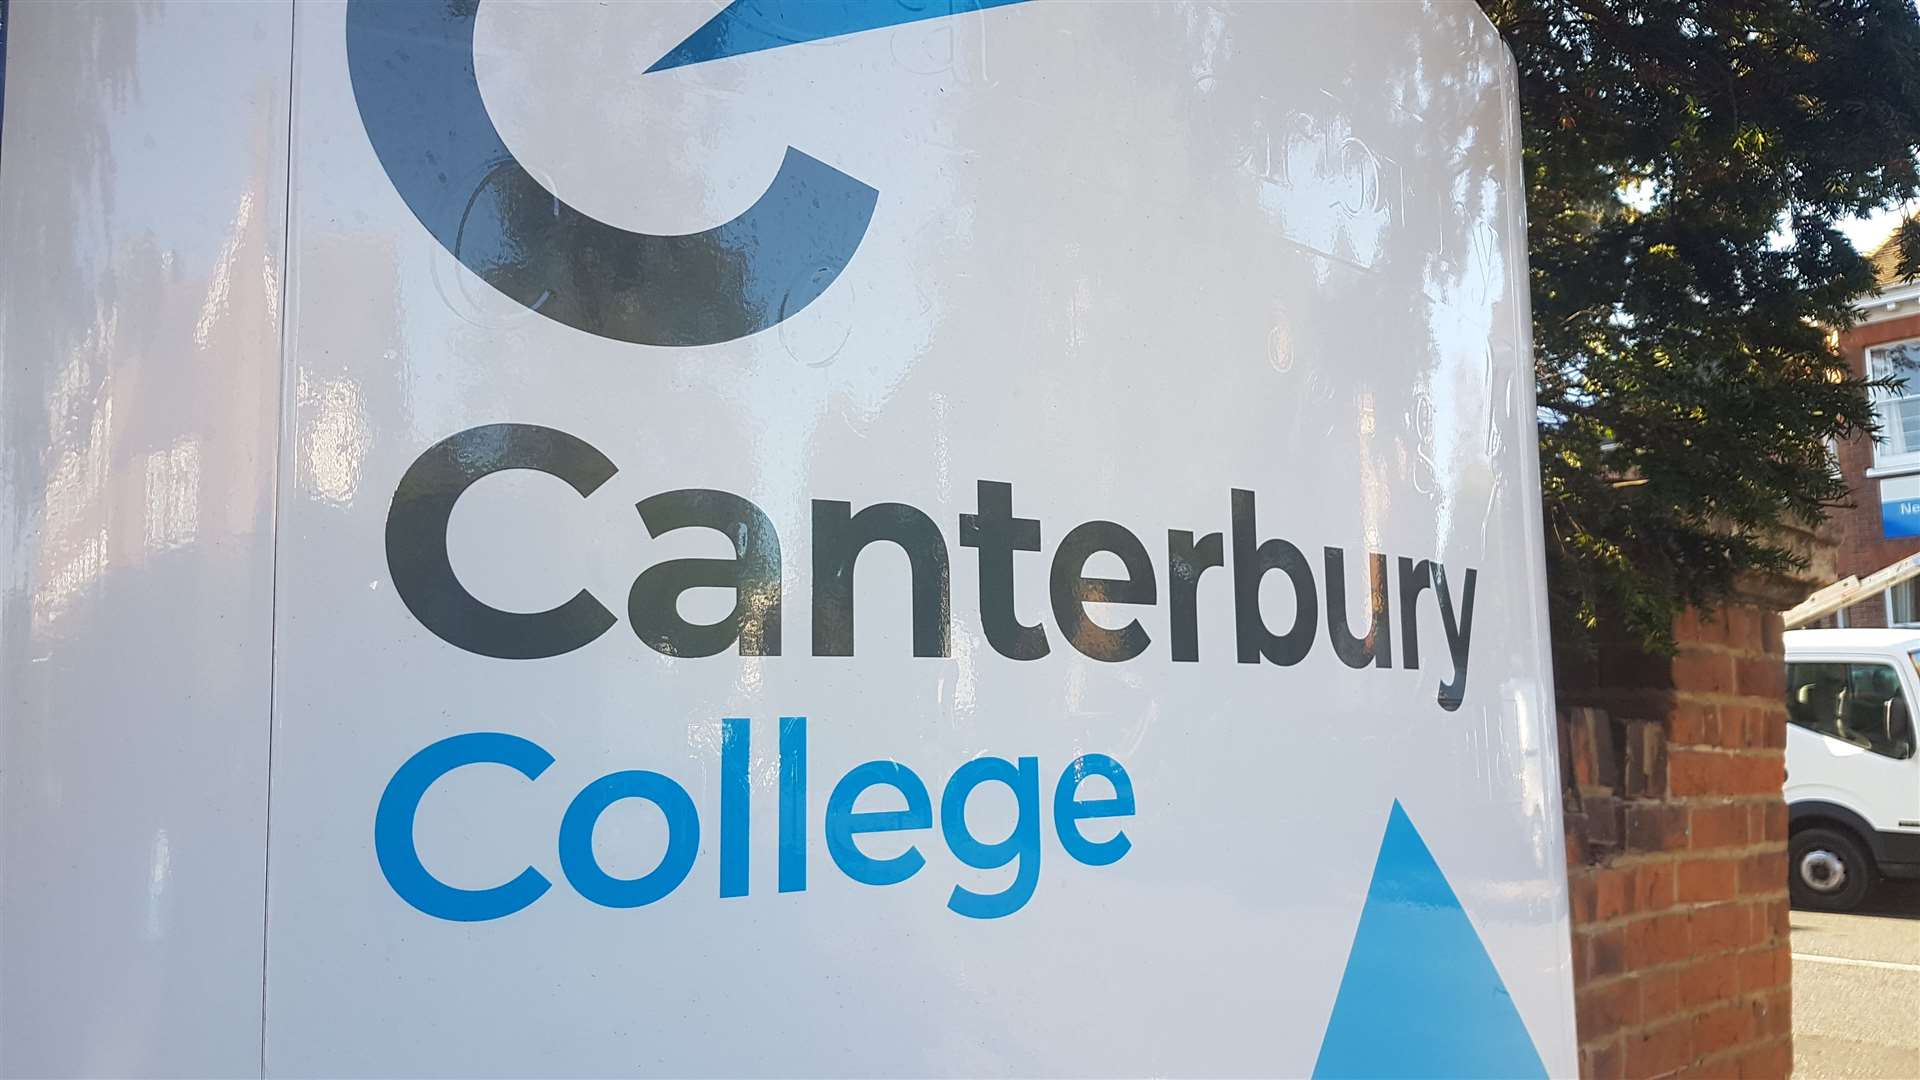 Make sure you arrive at Canterbury College prepared with your CV and something to write with as a lot of employers will have applications forms at the ready for you to fill in.